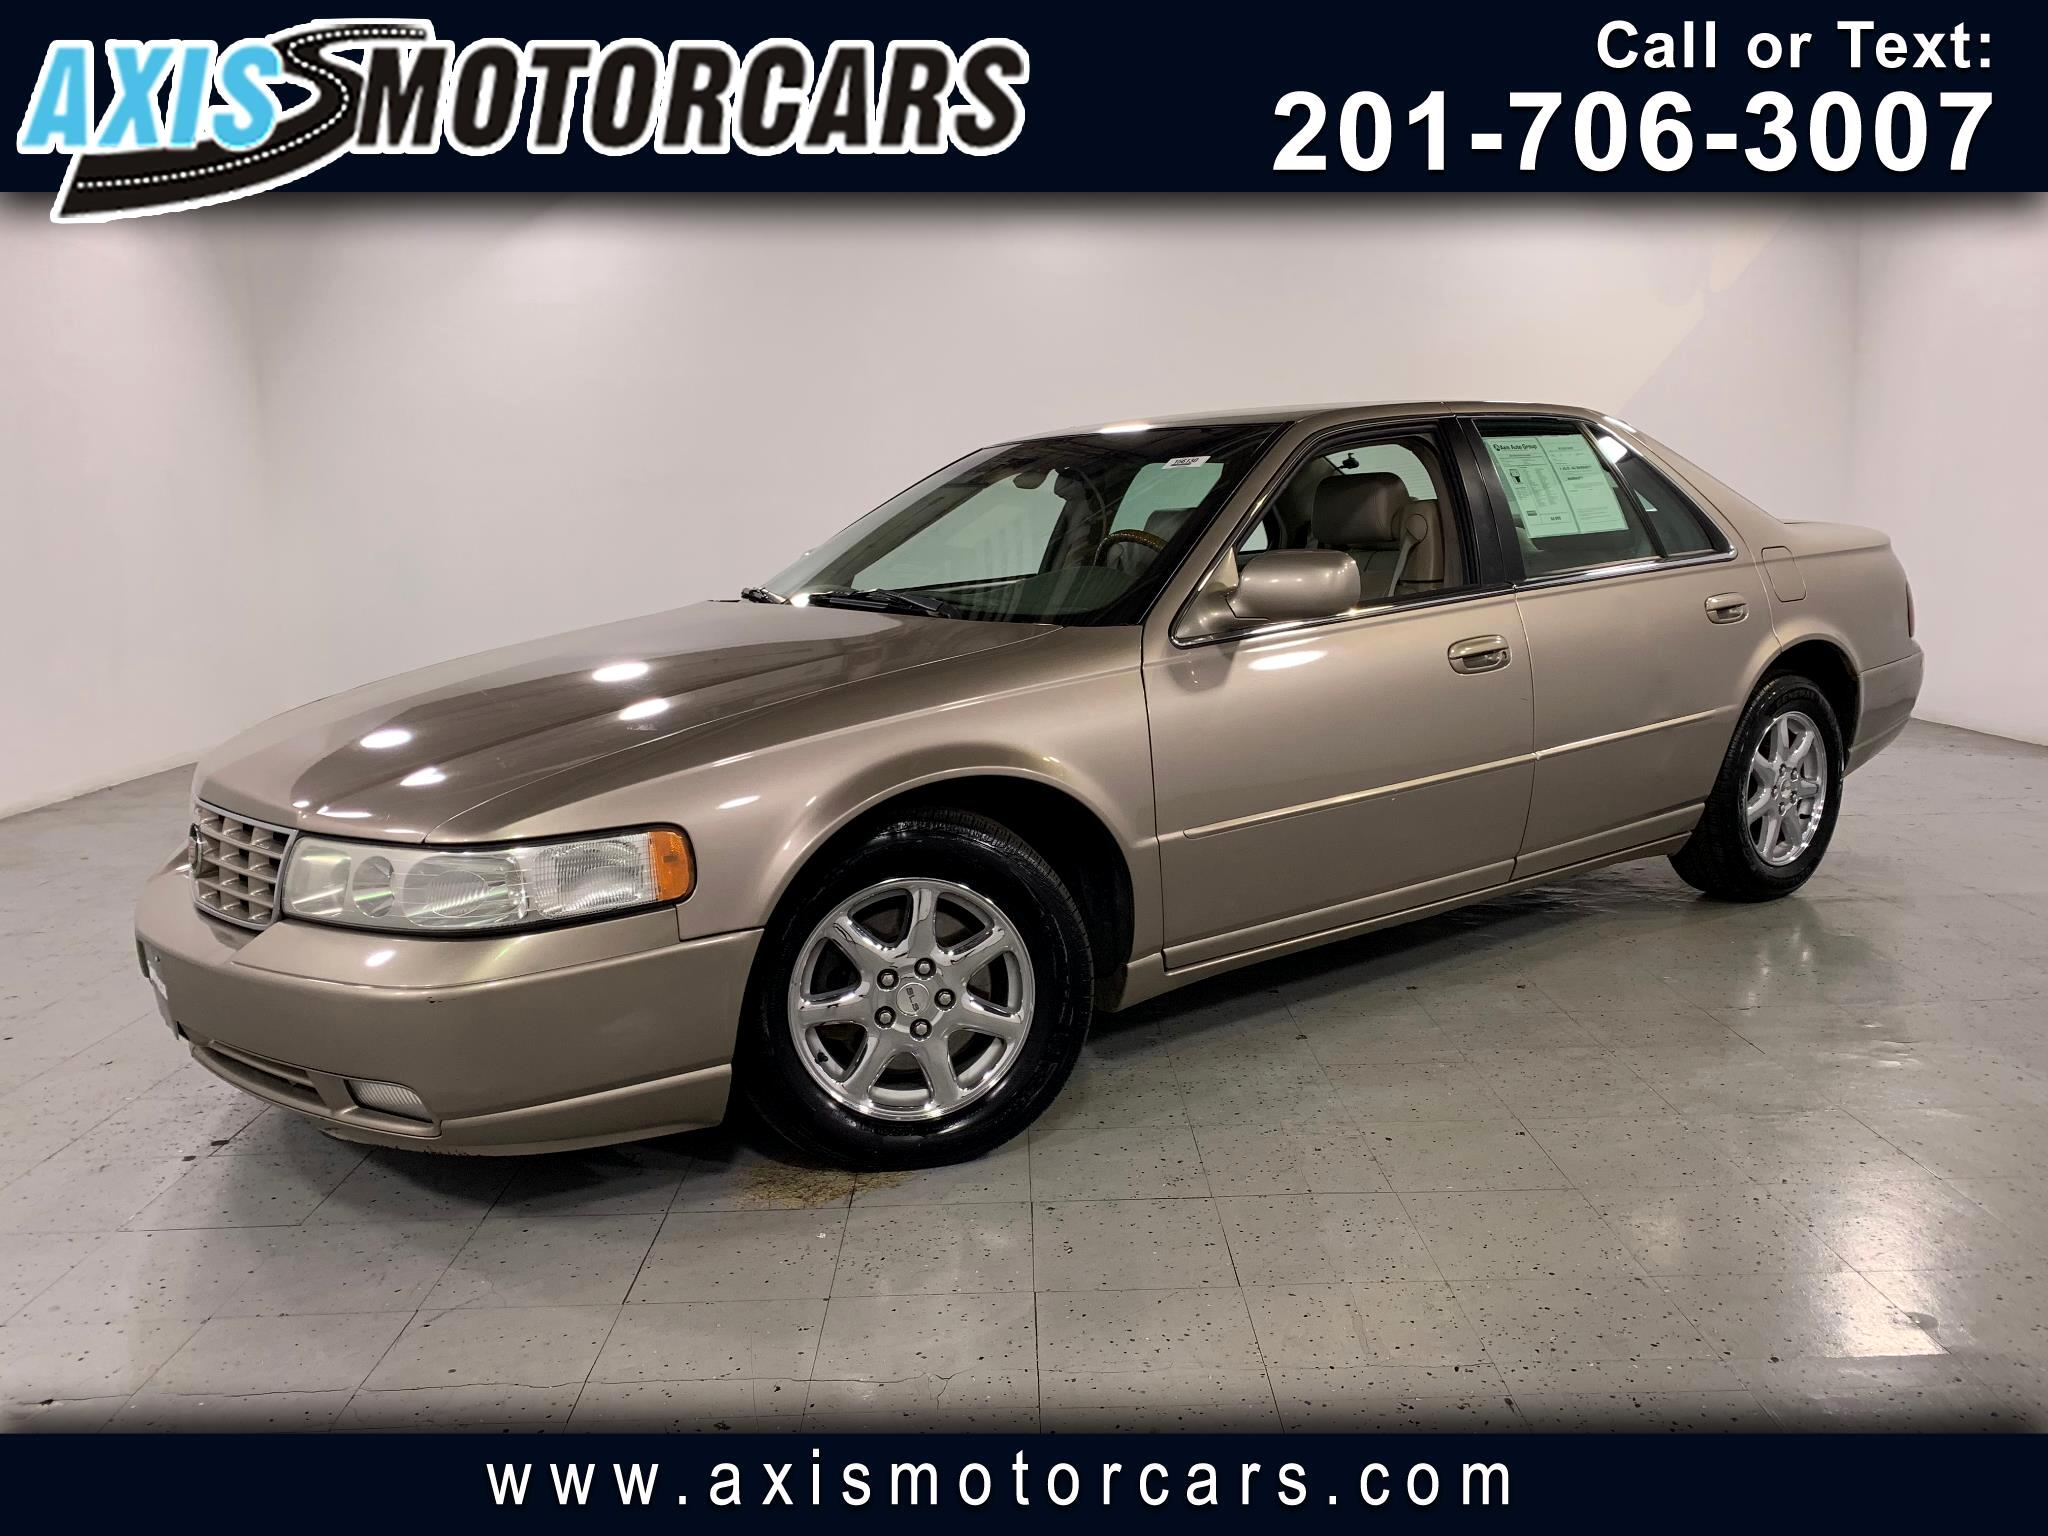 2004 Cadillac Seville SLS w/Leather